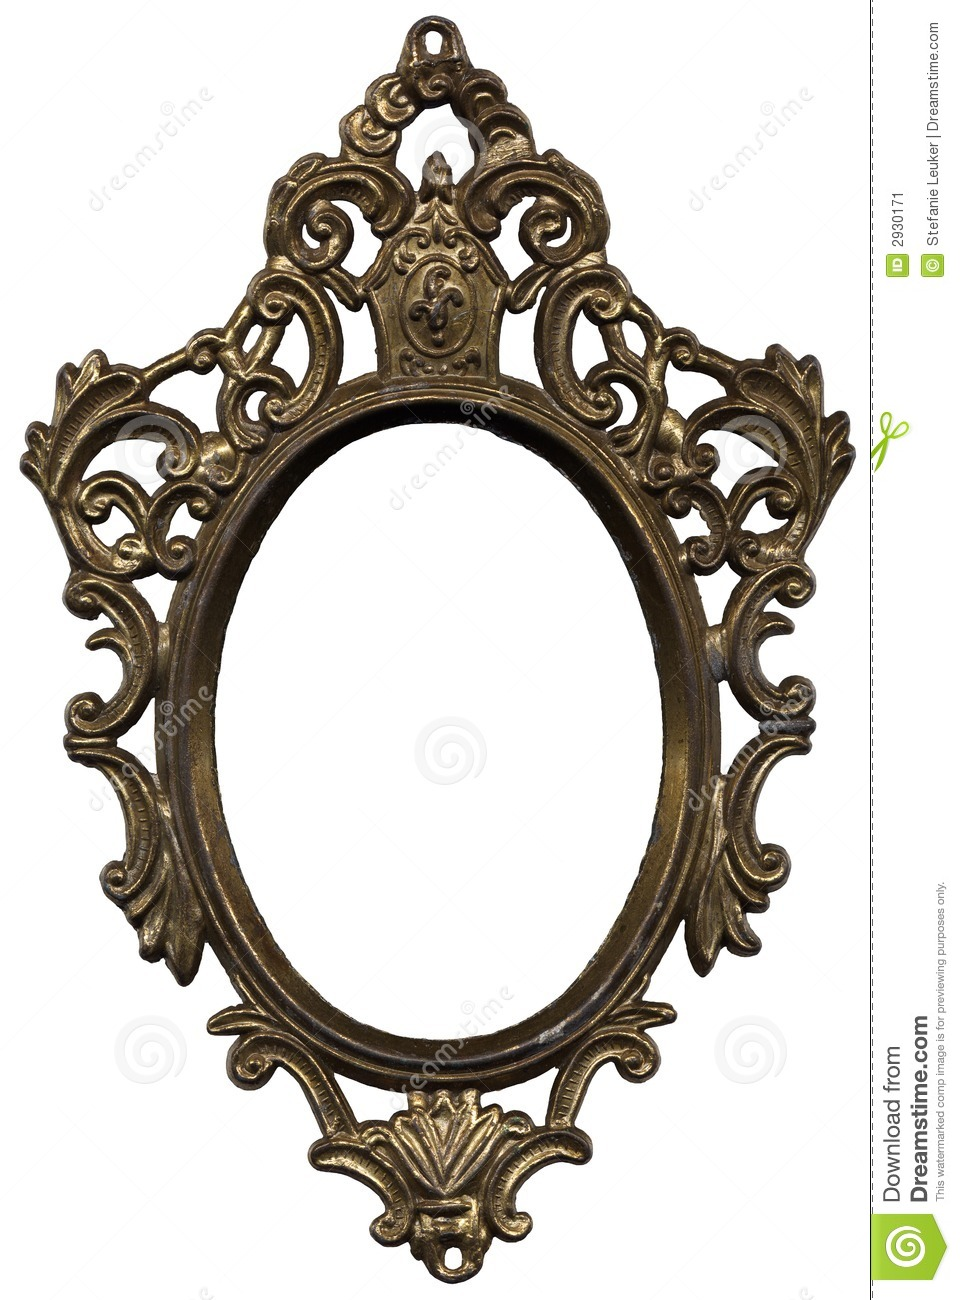 mirror frame stock image image of portrait golden oval. Black Bedroom Furniture Sets. Home Design Ideas